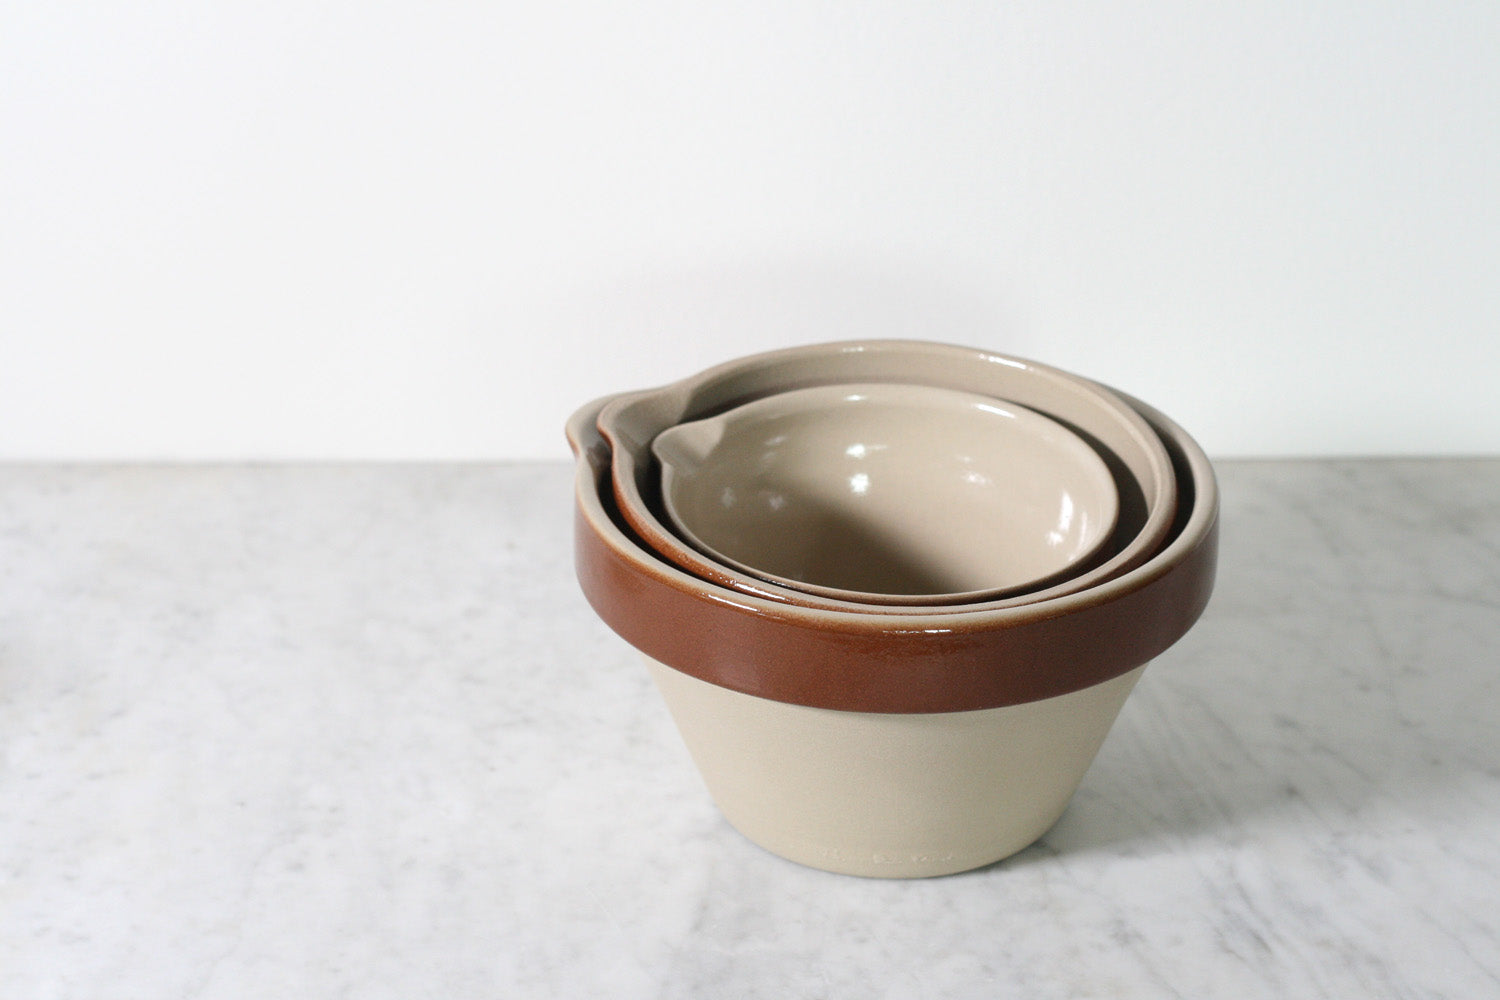 Poterie Renault Mixing Bowls